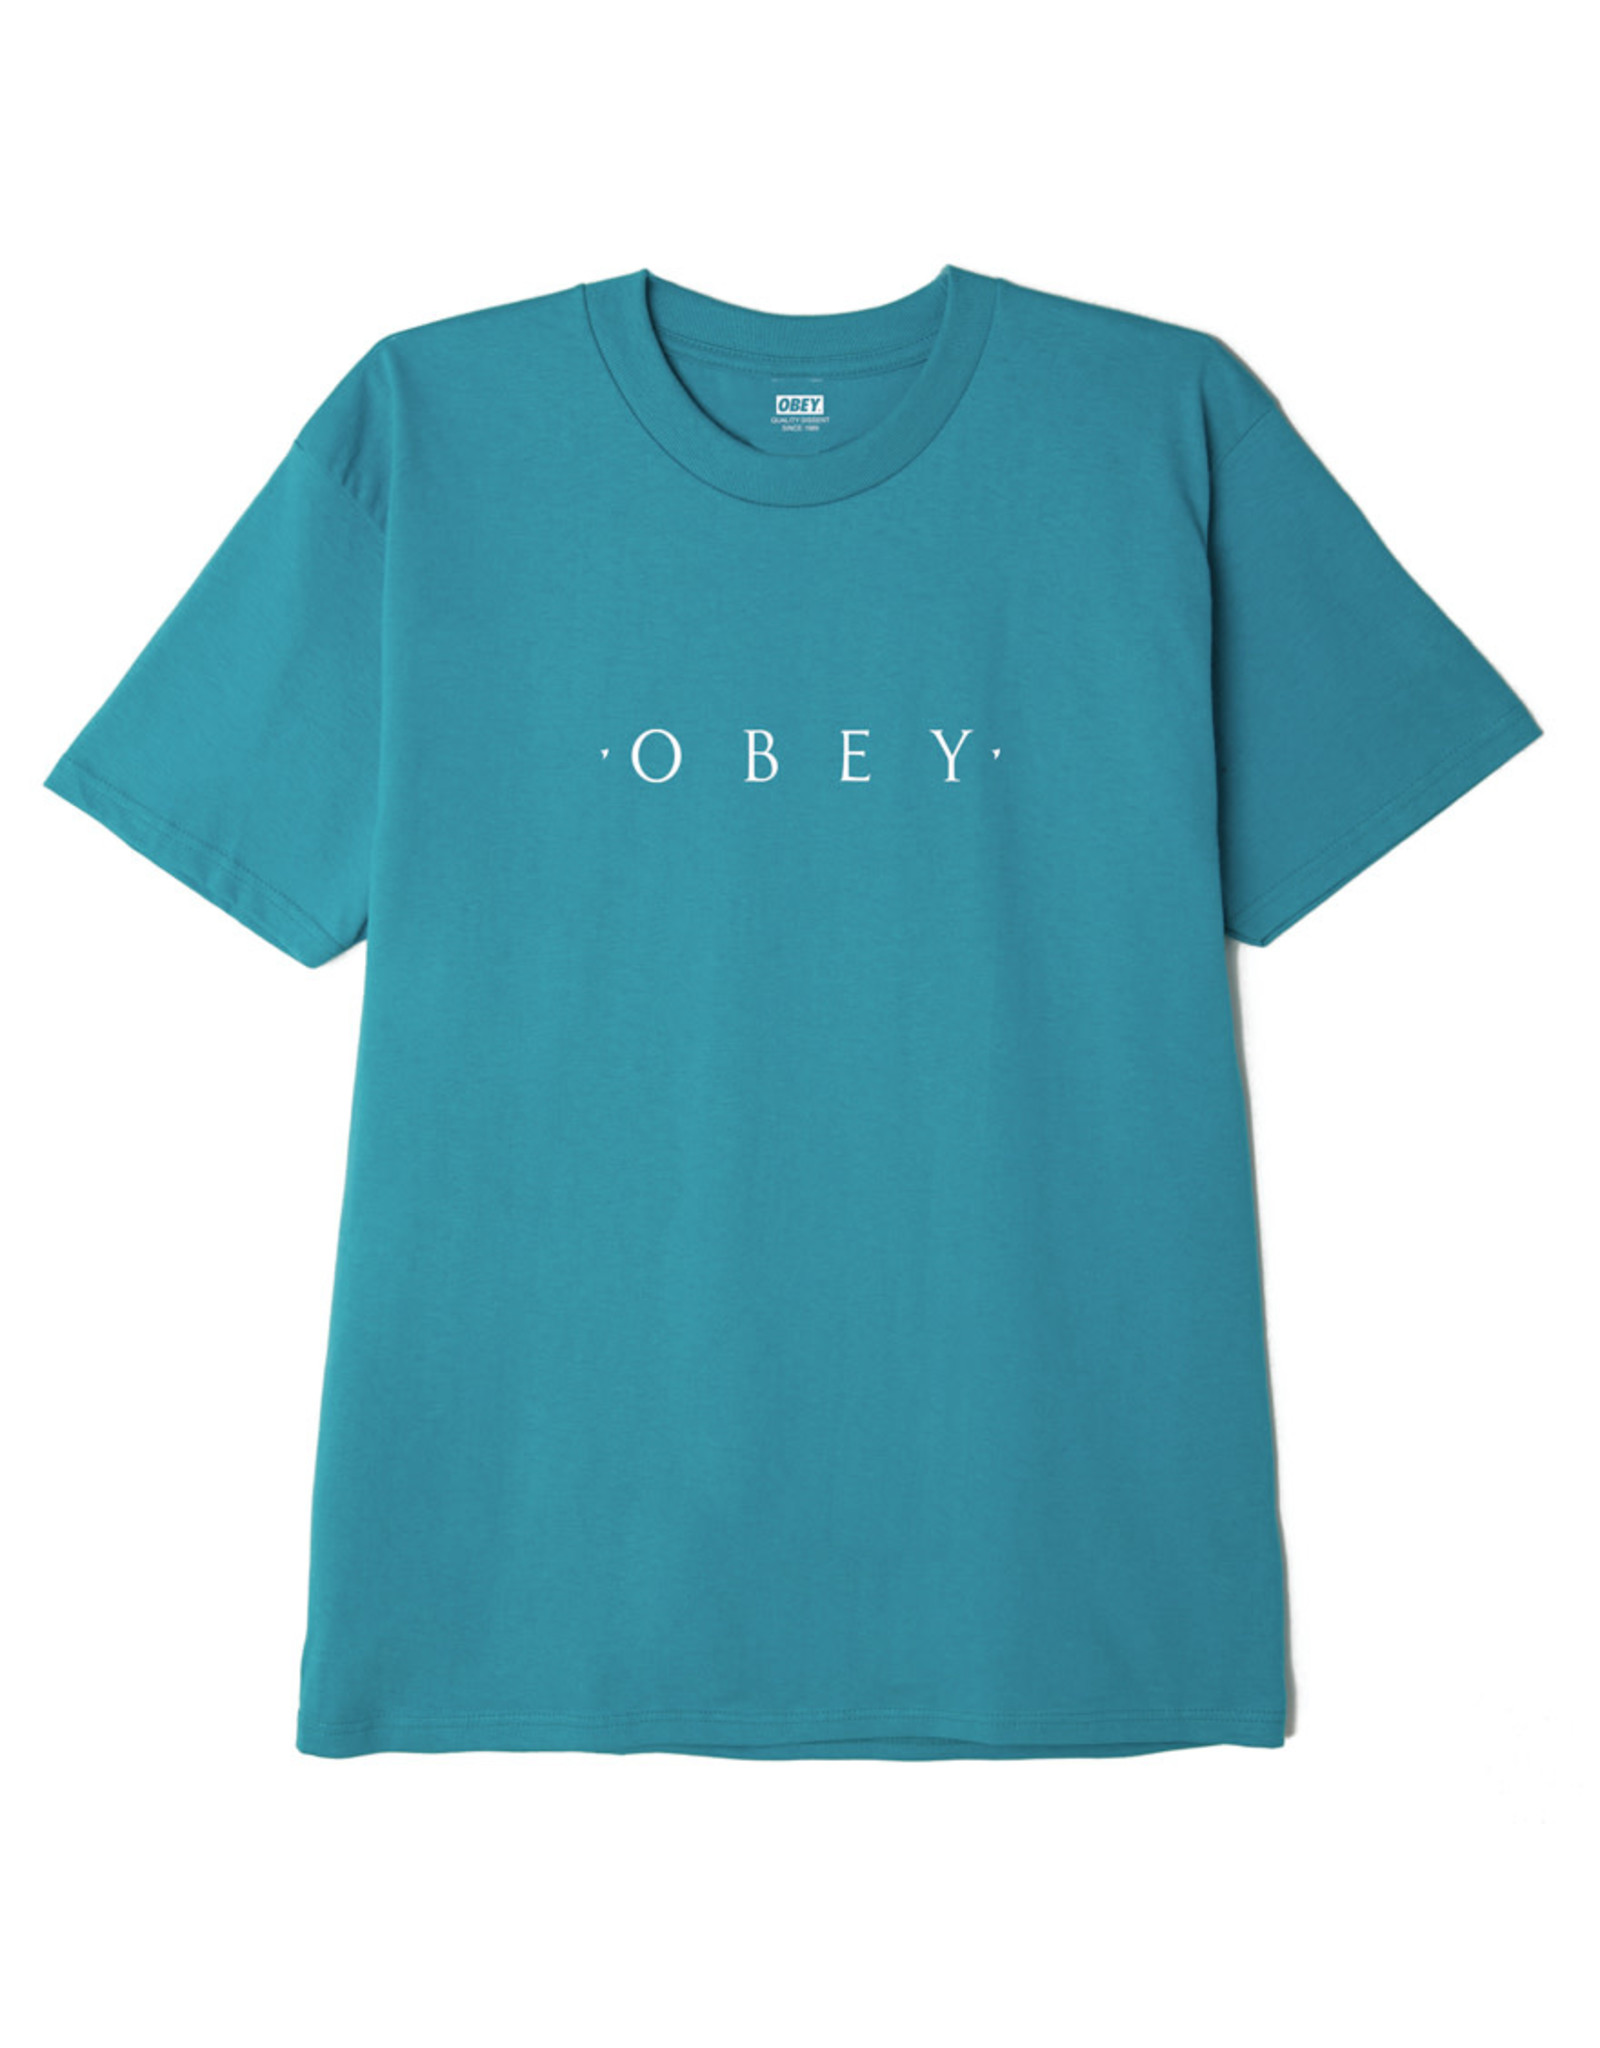 Obey Obey - T-shirt homme novel obey classic teal